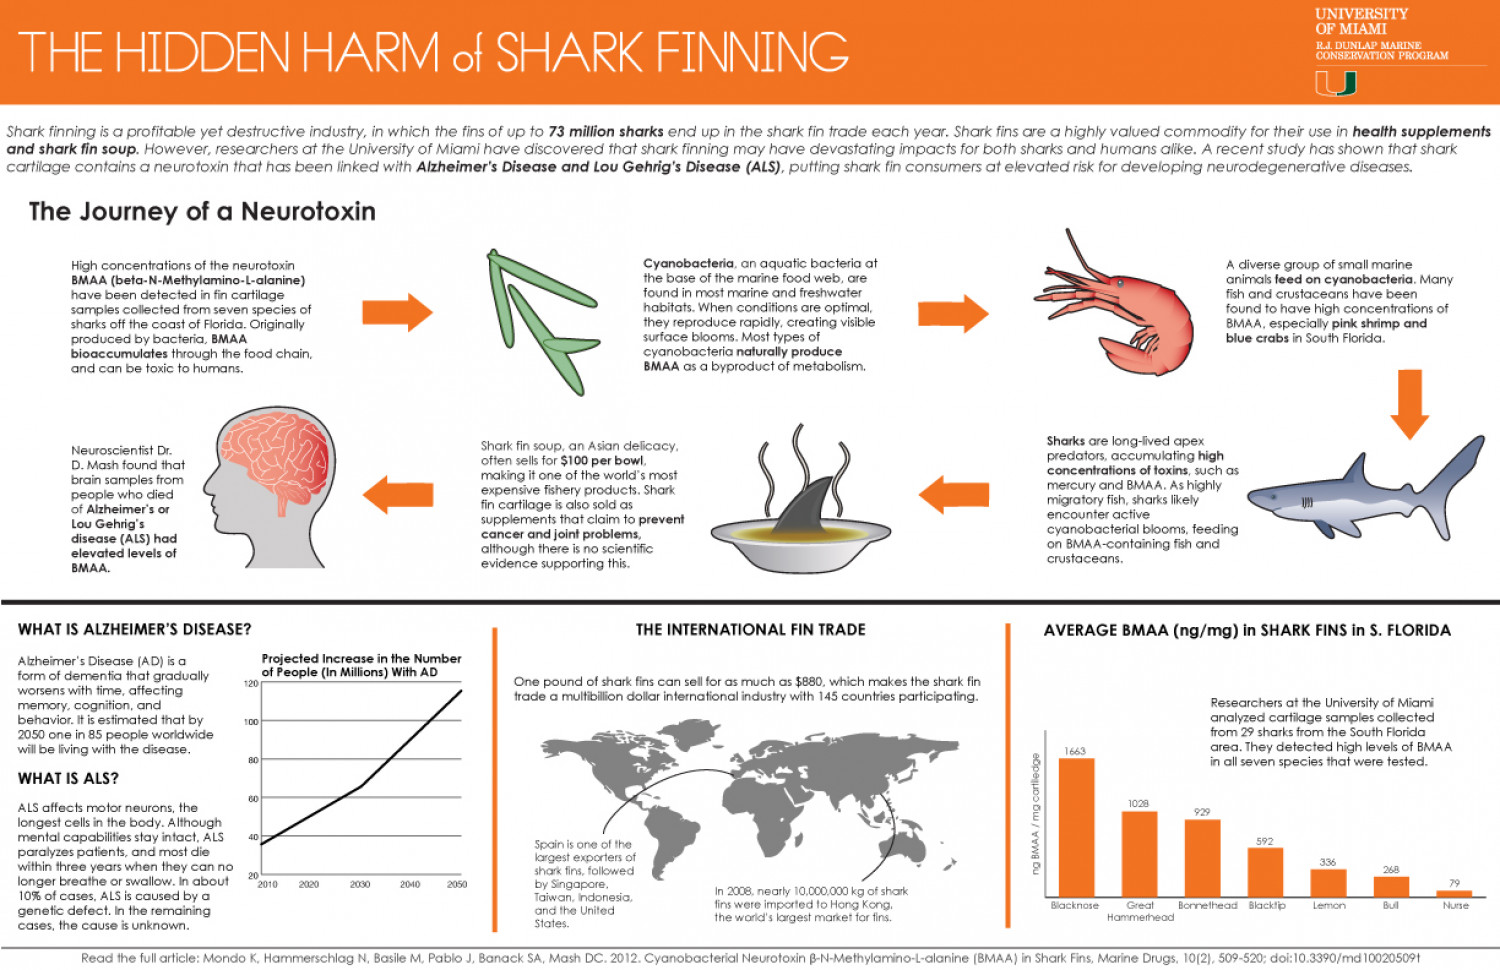 The Hidden Harm of Shark Finning Infographic